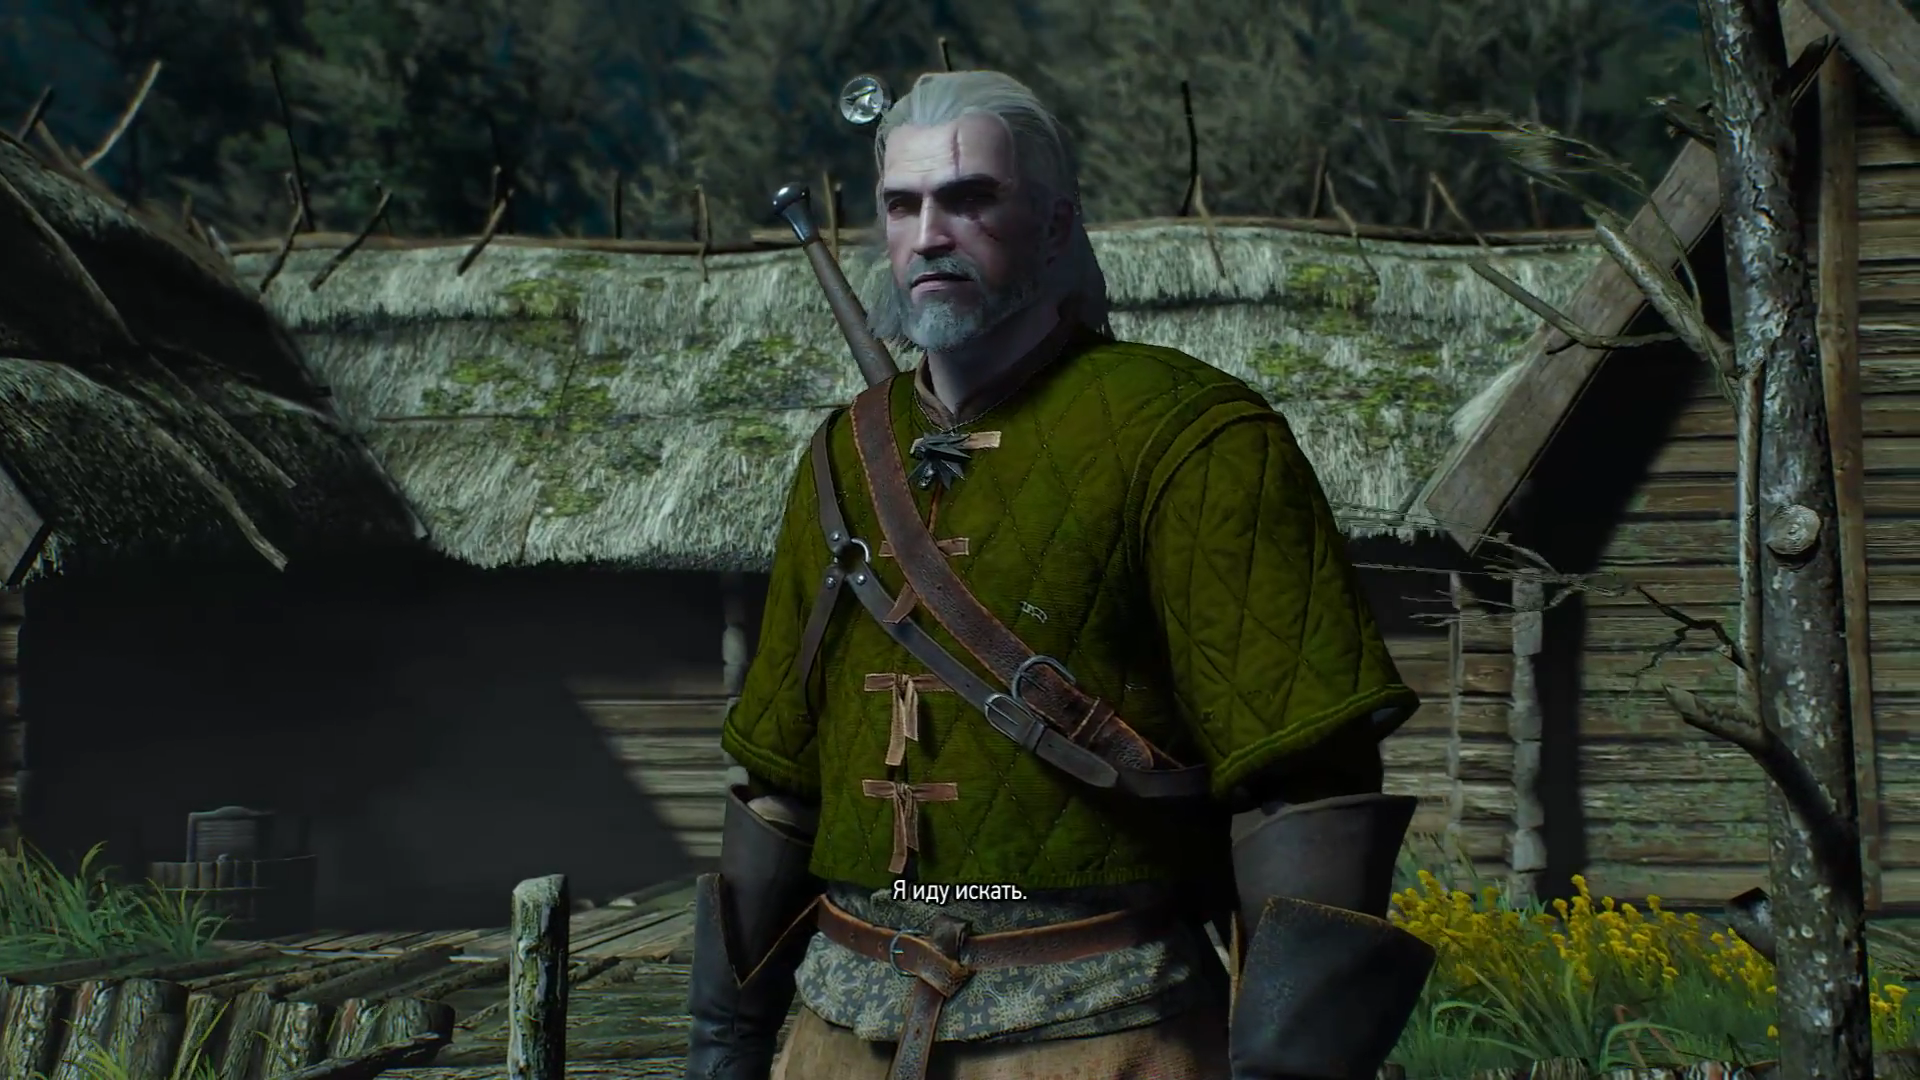 youtu.be-VCgqFttVRHw (4).png - Witcher 3: Wild Hunt, the